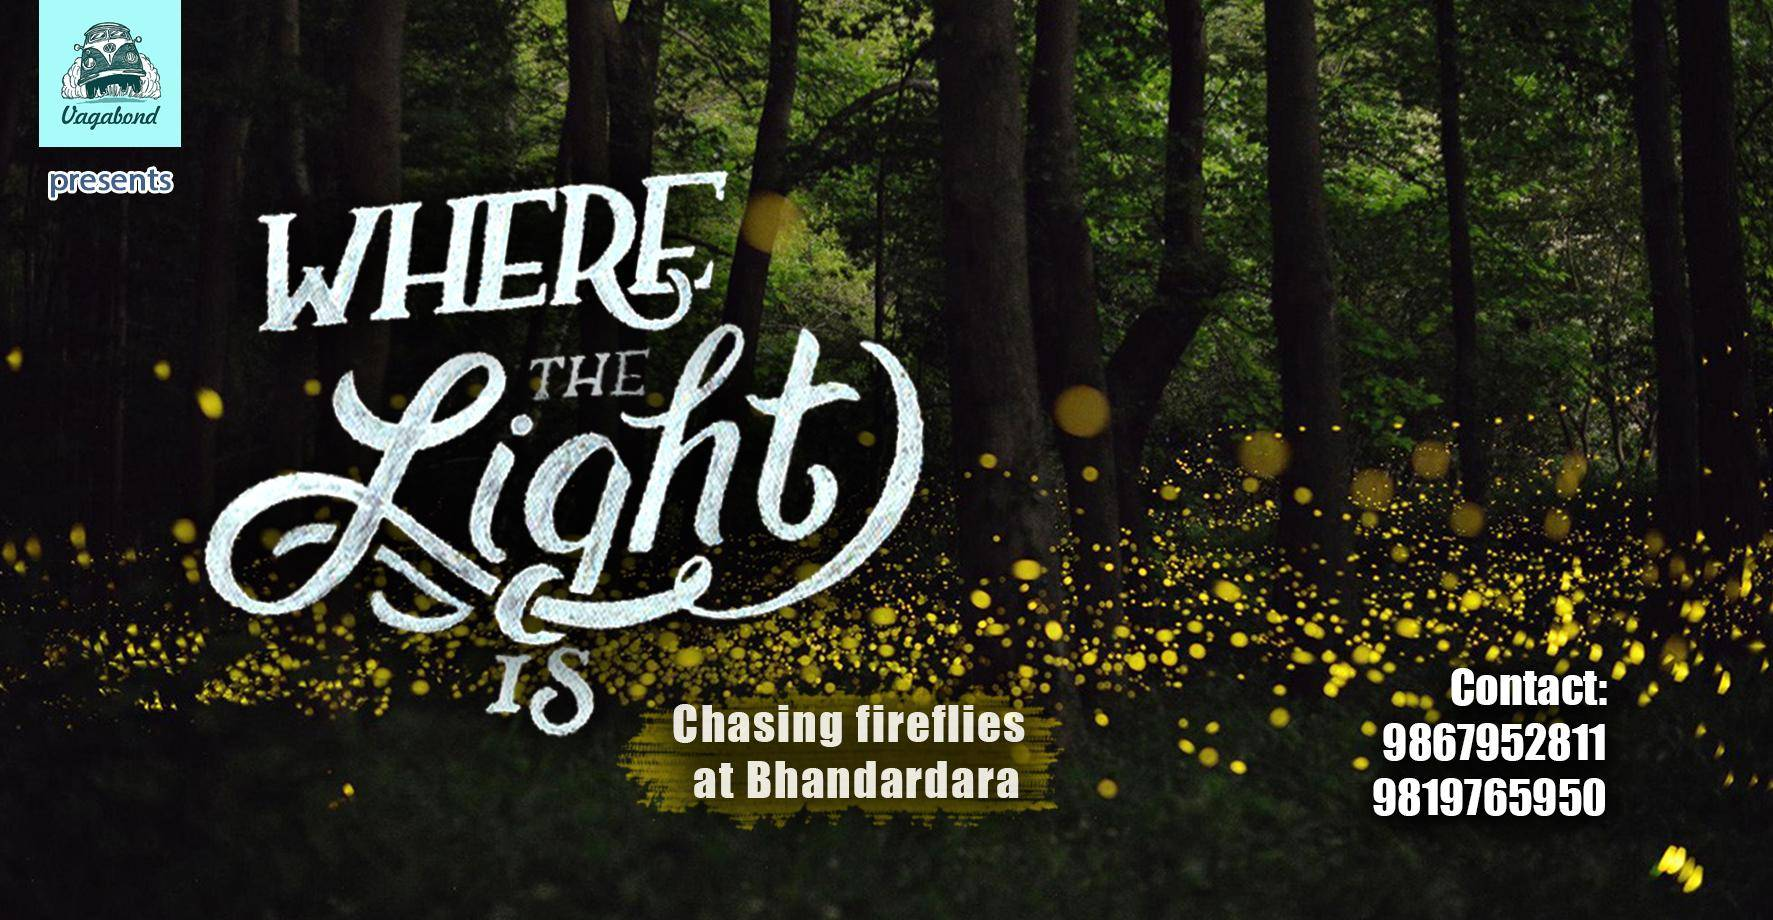 Where The Light Is (Chasing fireflies at Bhandardara)